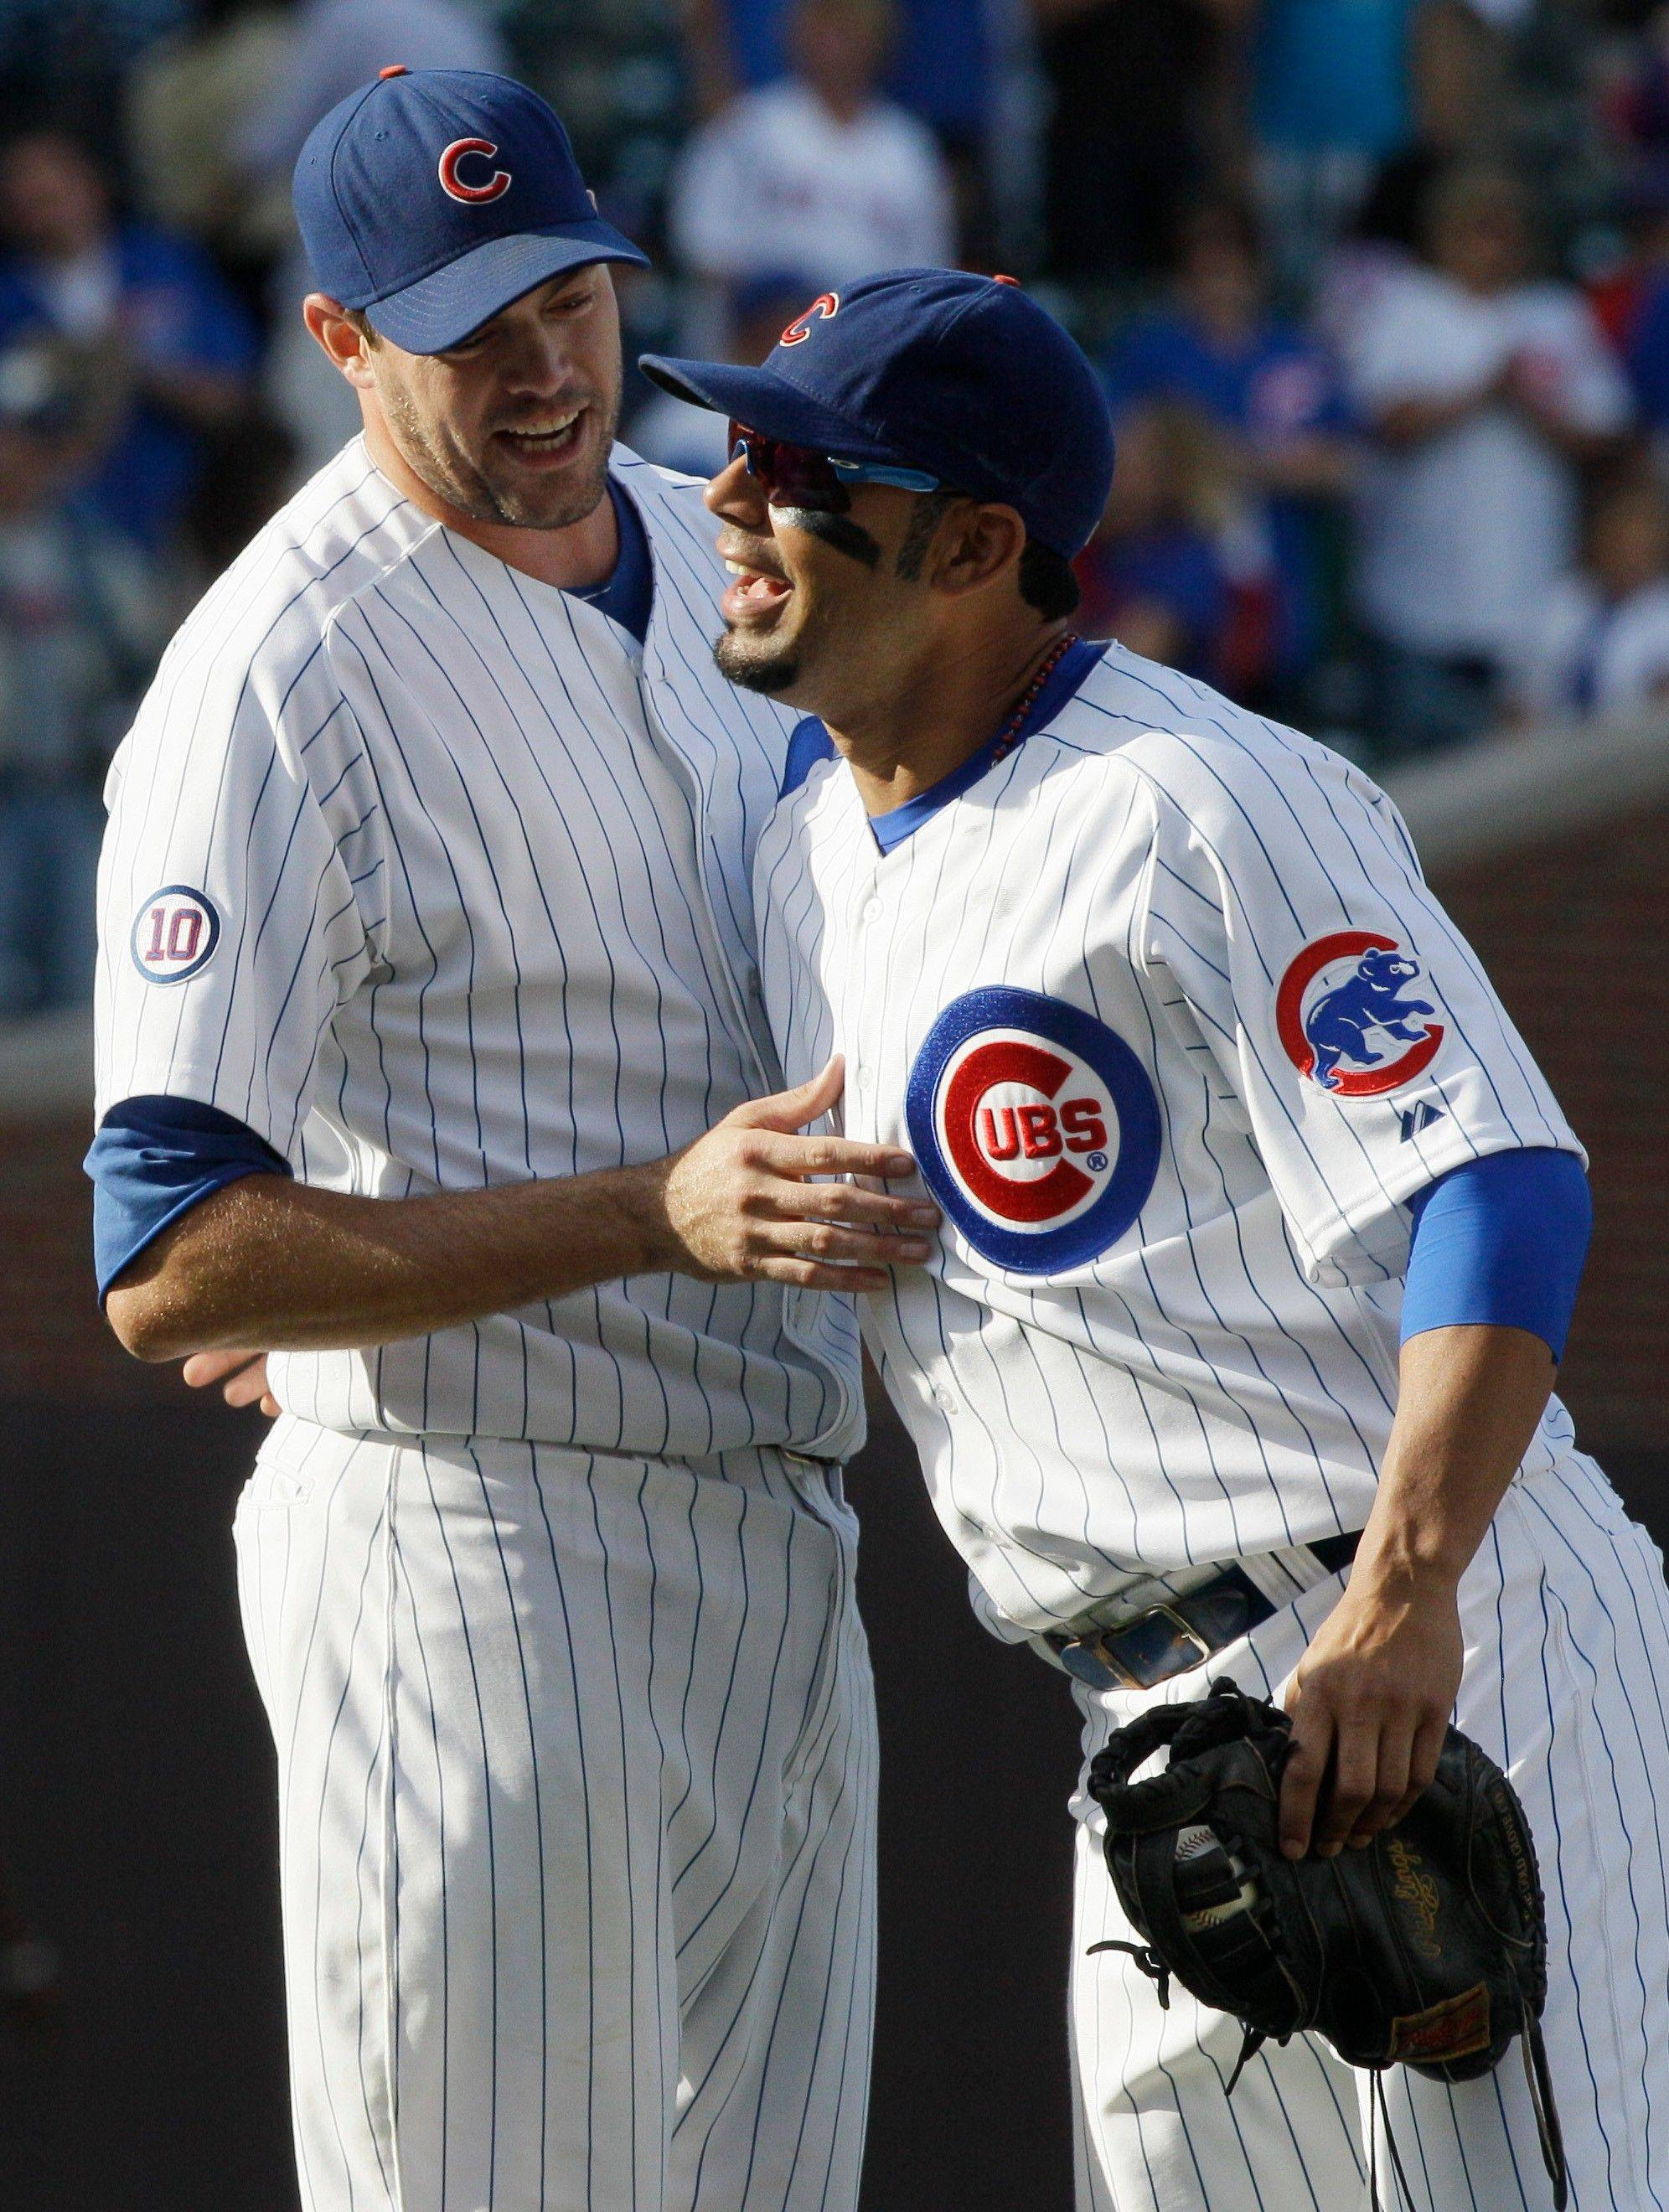 Sean Marshall, left, celebrates with Carlos Pena after the Cubs defeated the Pirates on Sunday. It was Marshall's fourth save of the season.